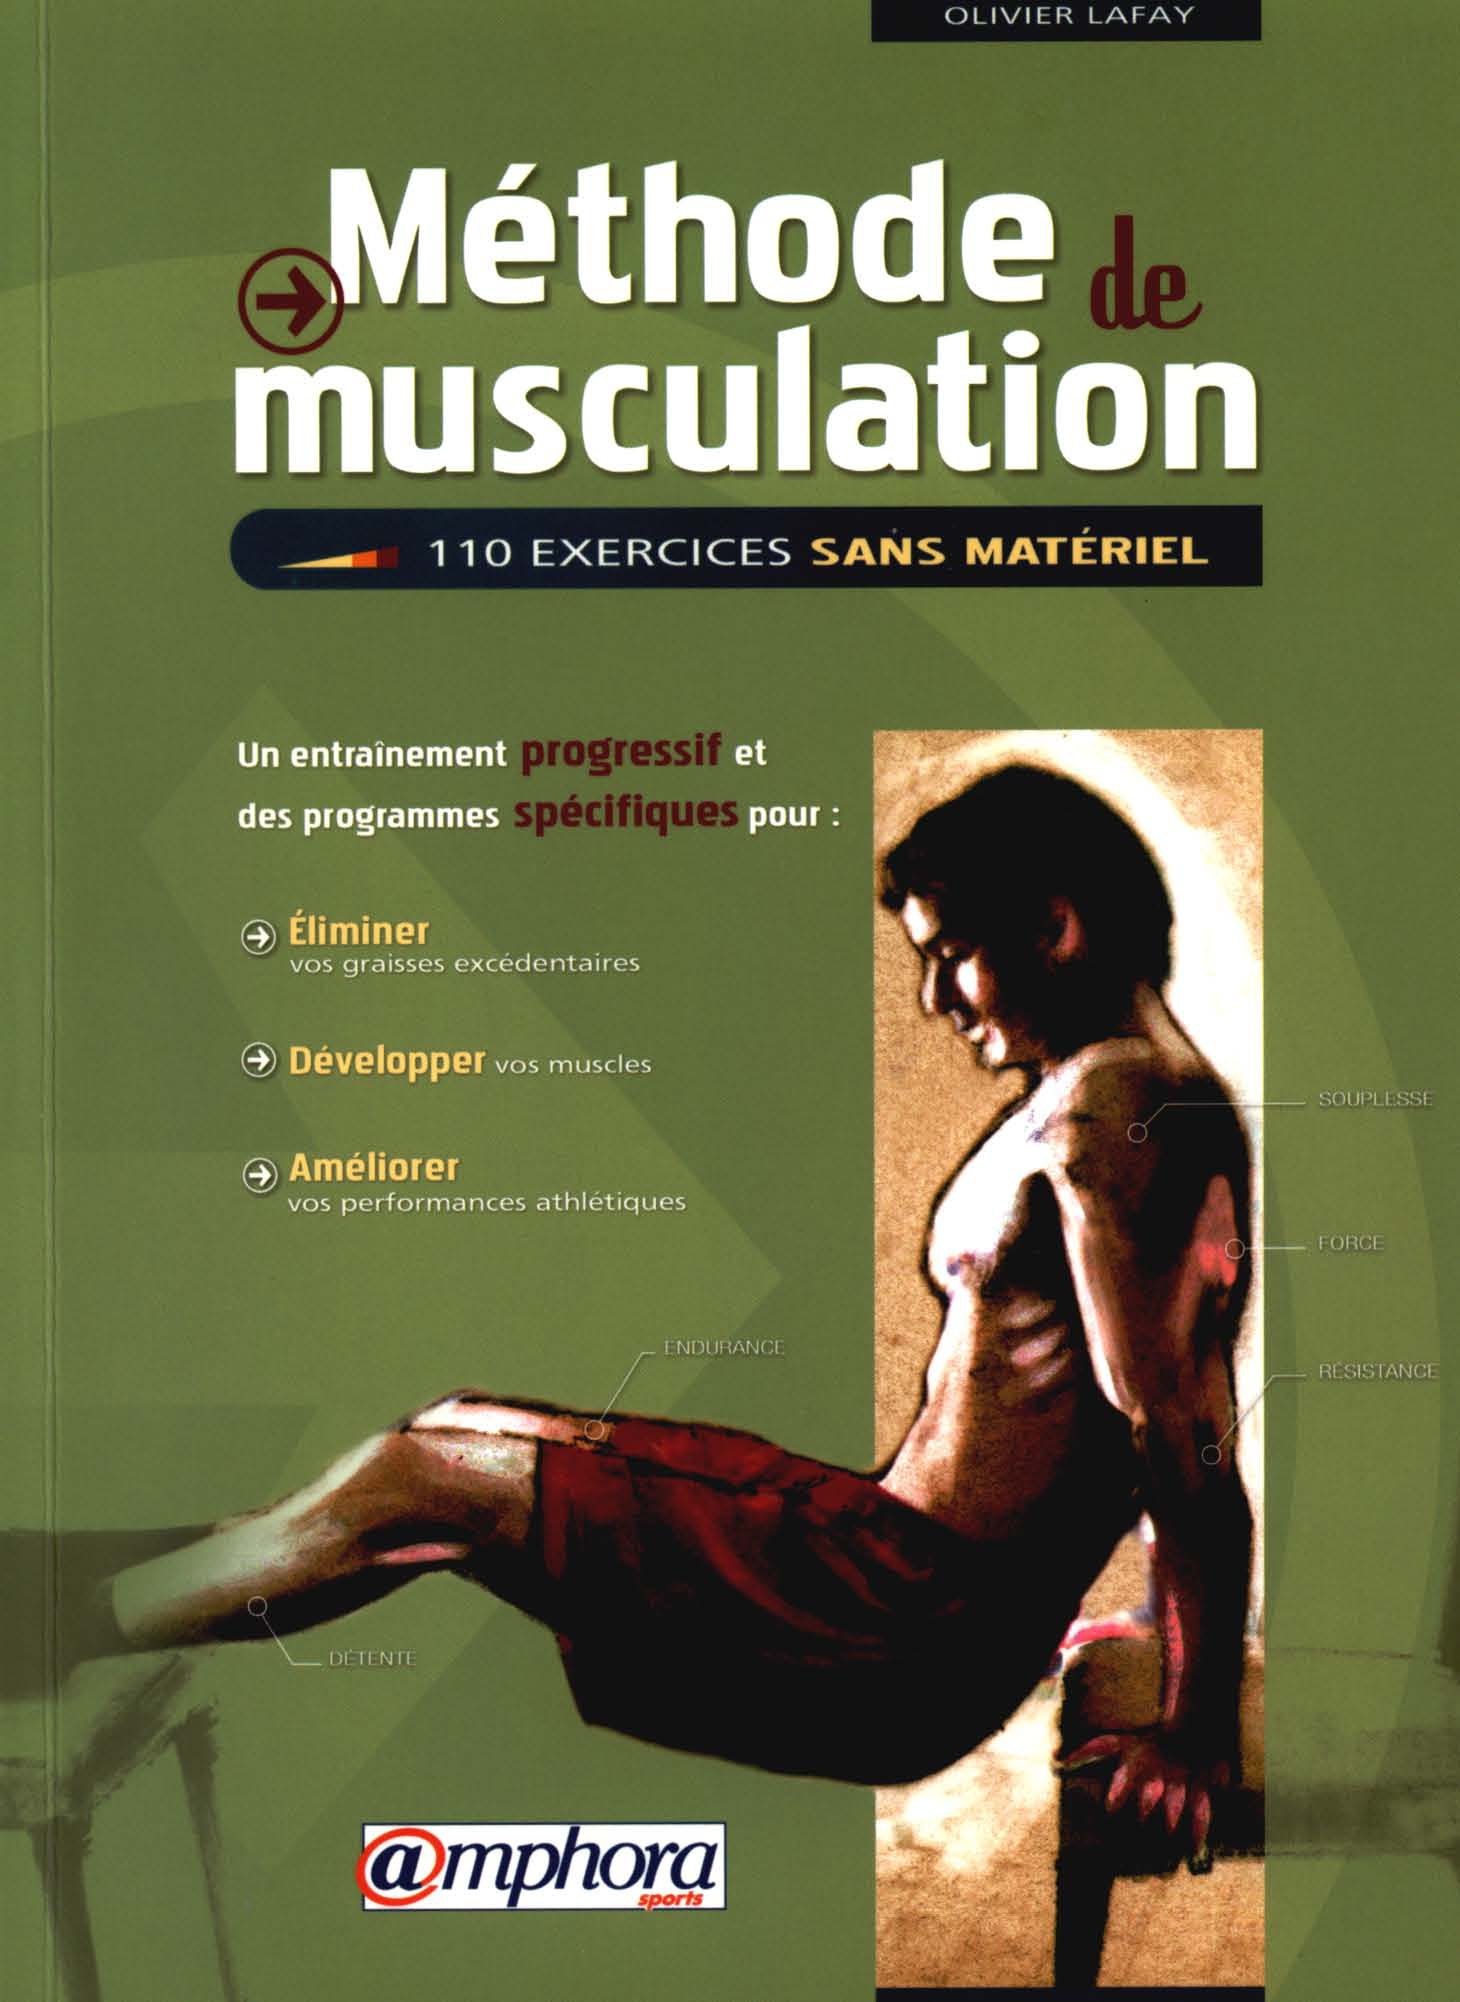 photo methode lafay musculation homme